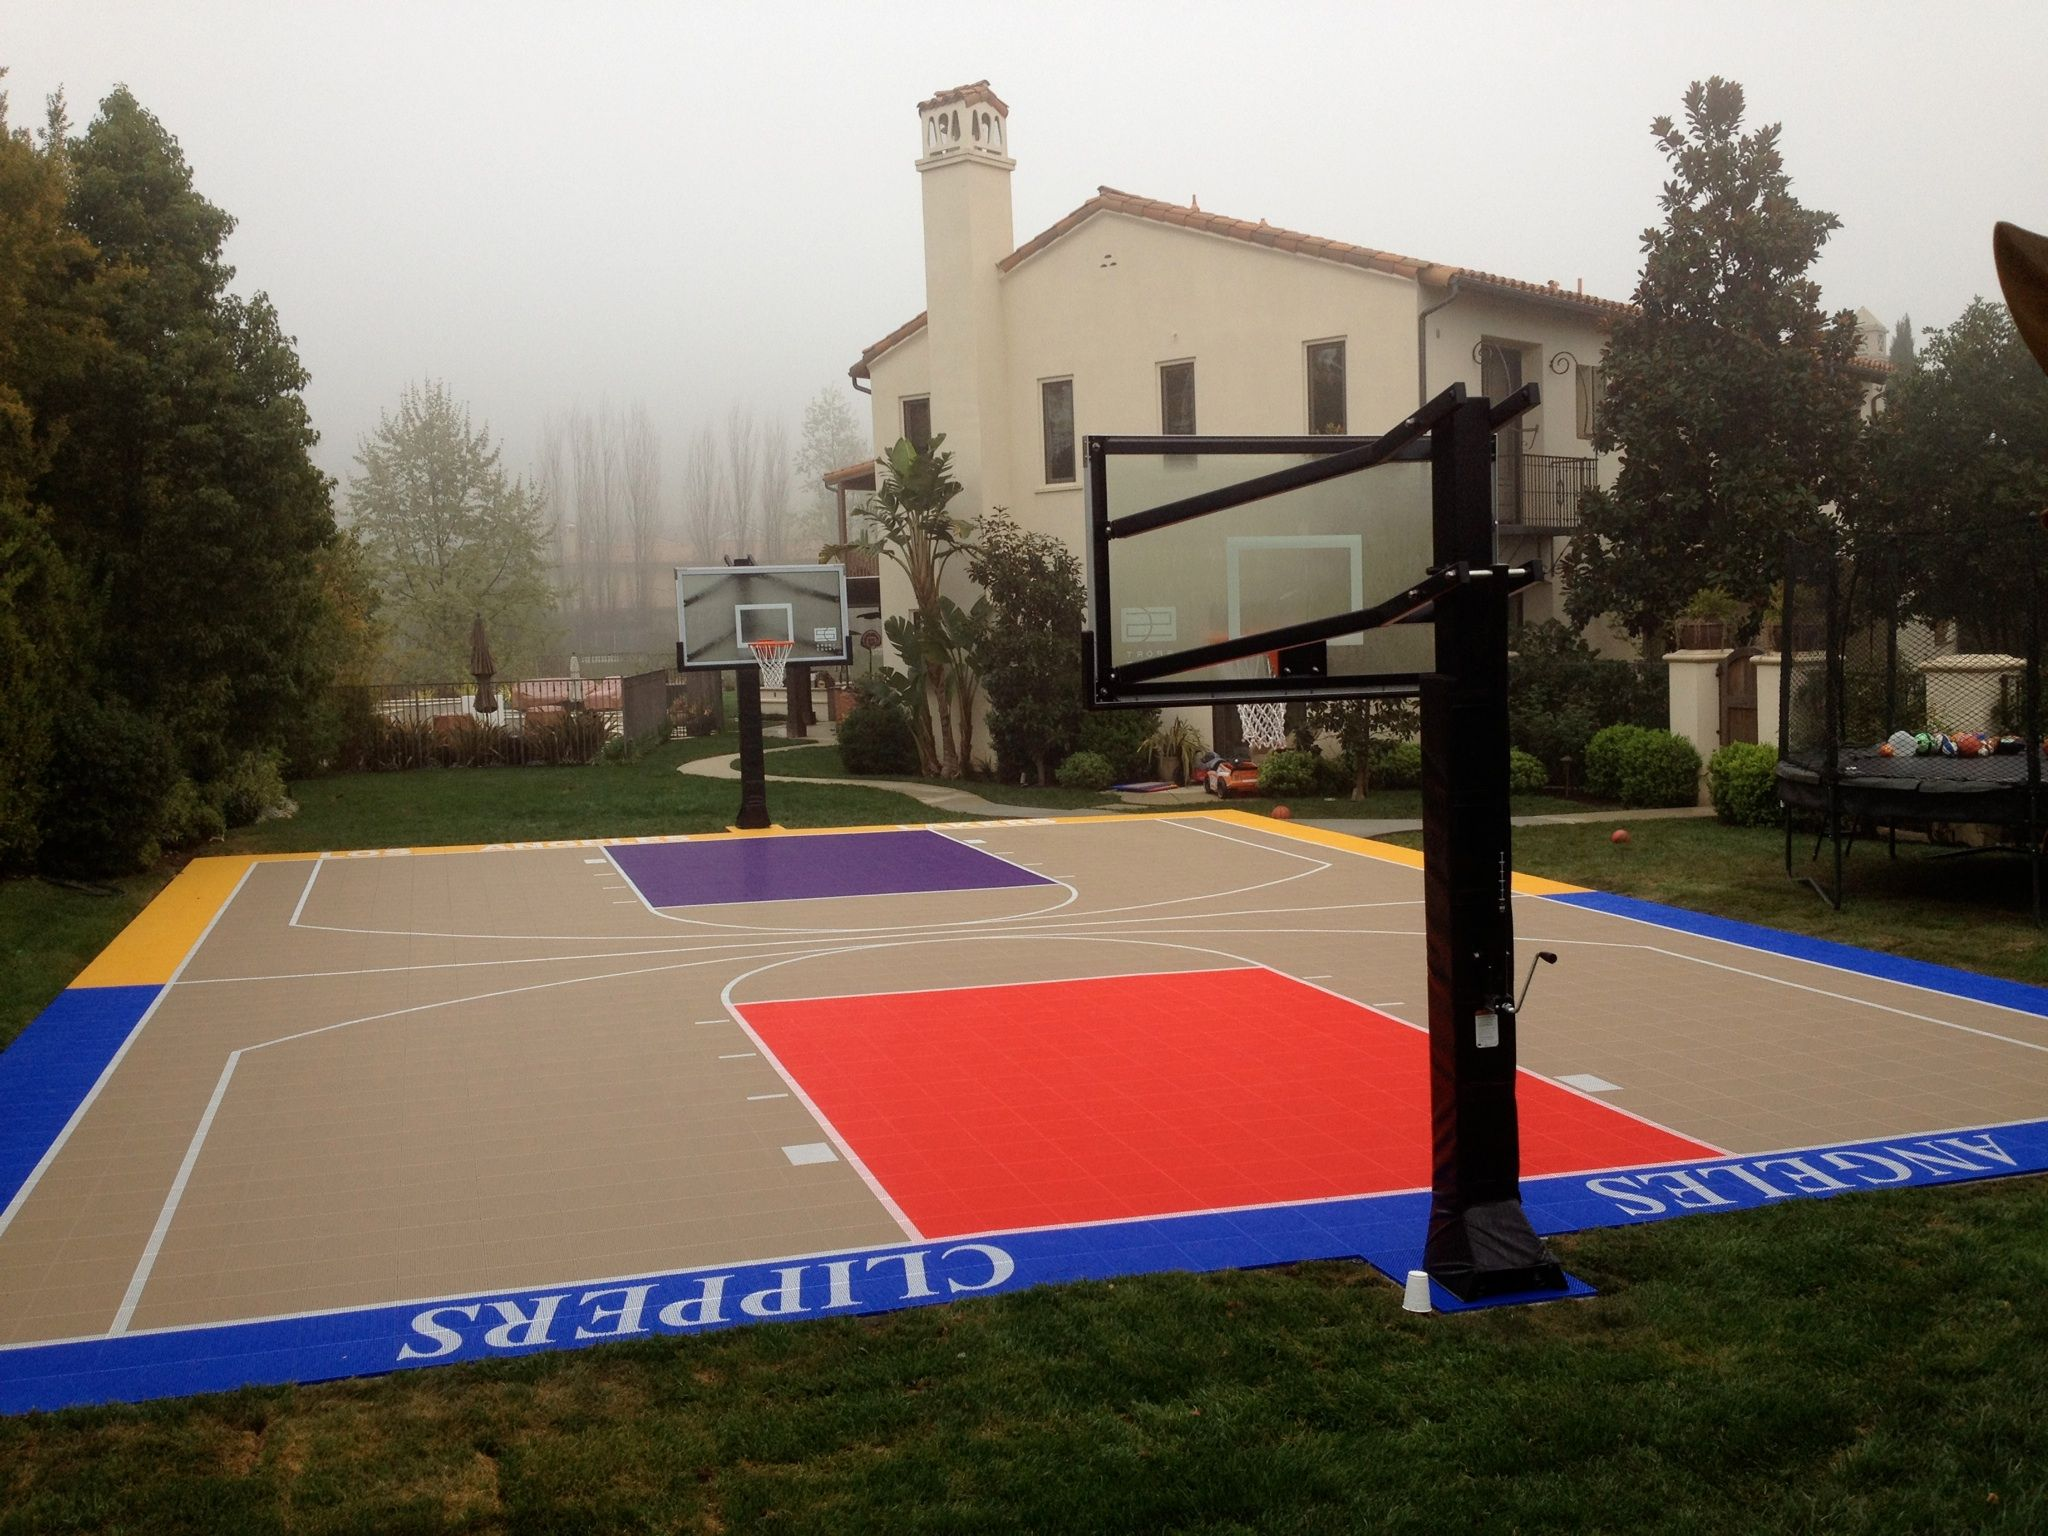 this court was the perfect match for a split fan family check out